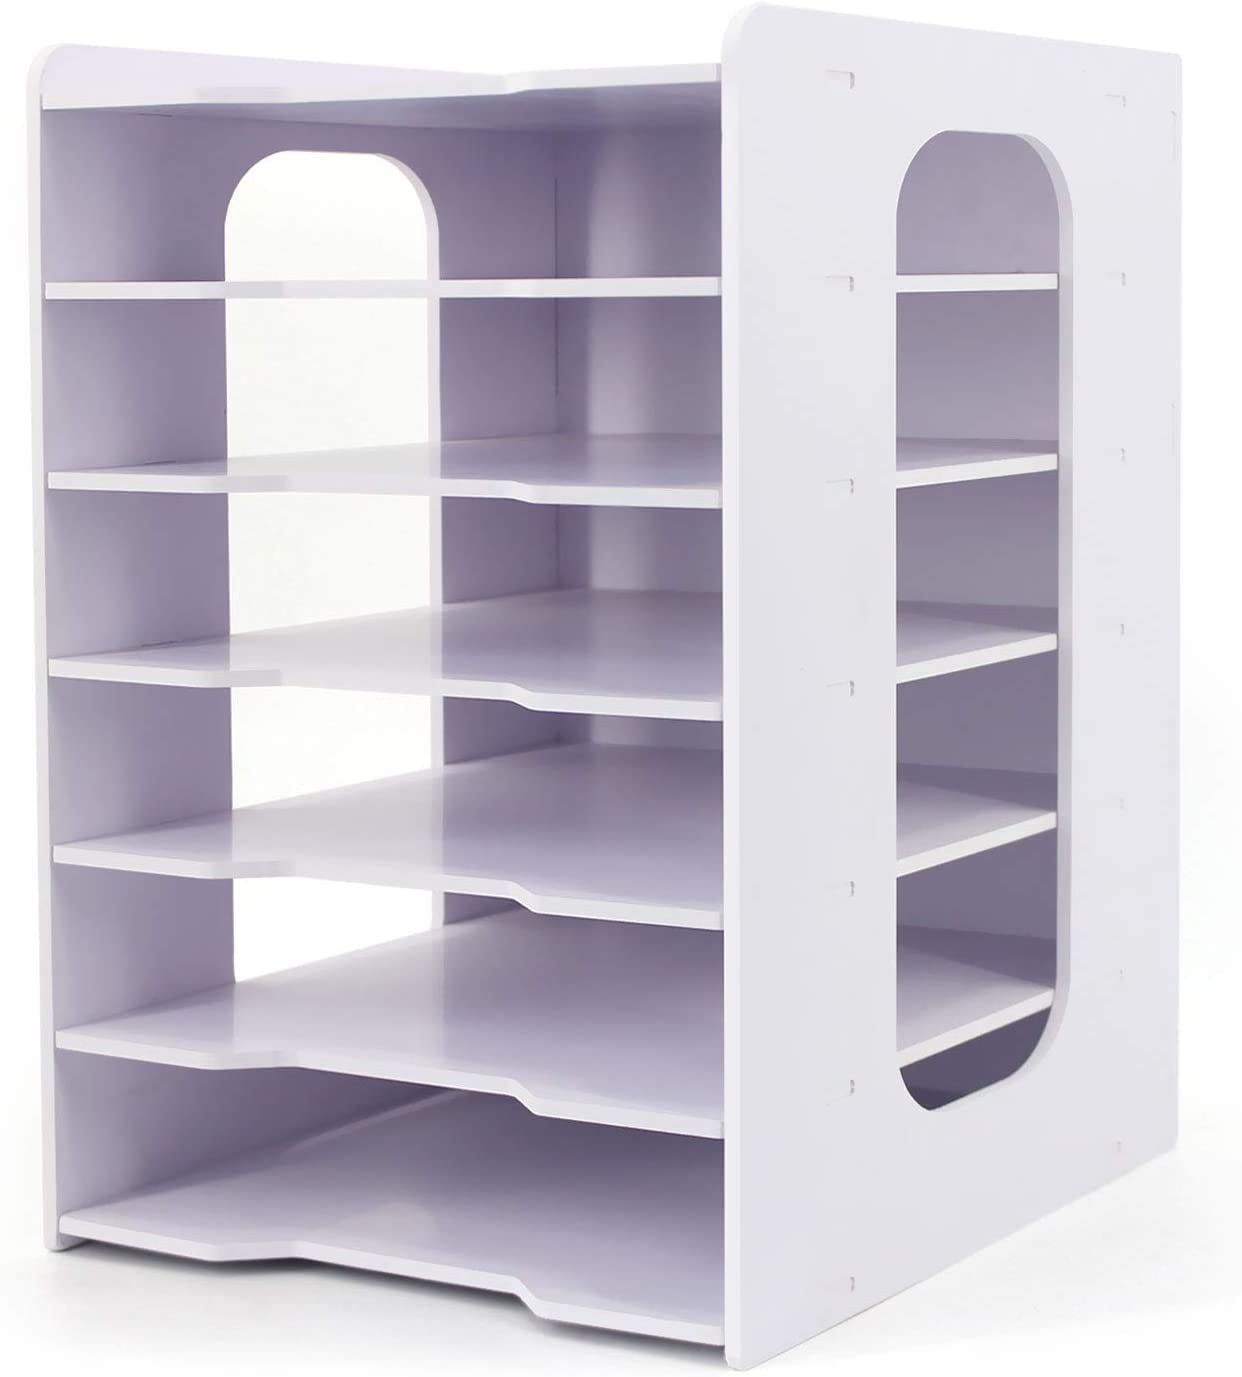 SONGWAY File Organizer for Offic Max 53% OFF Home Popular overseas - Desk